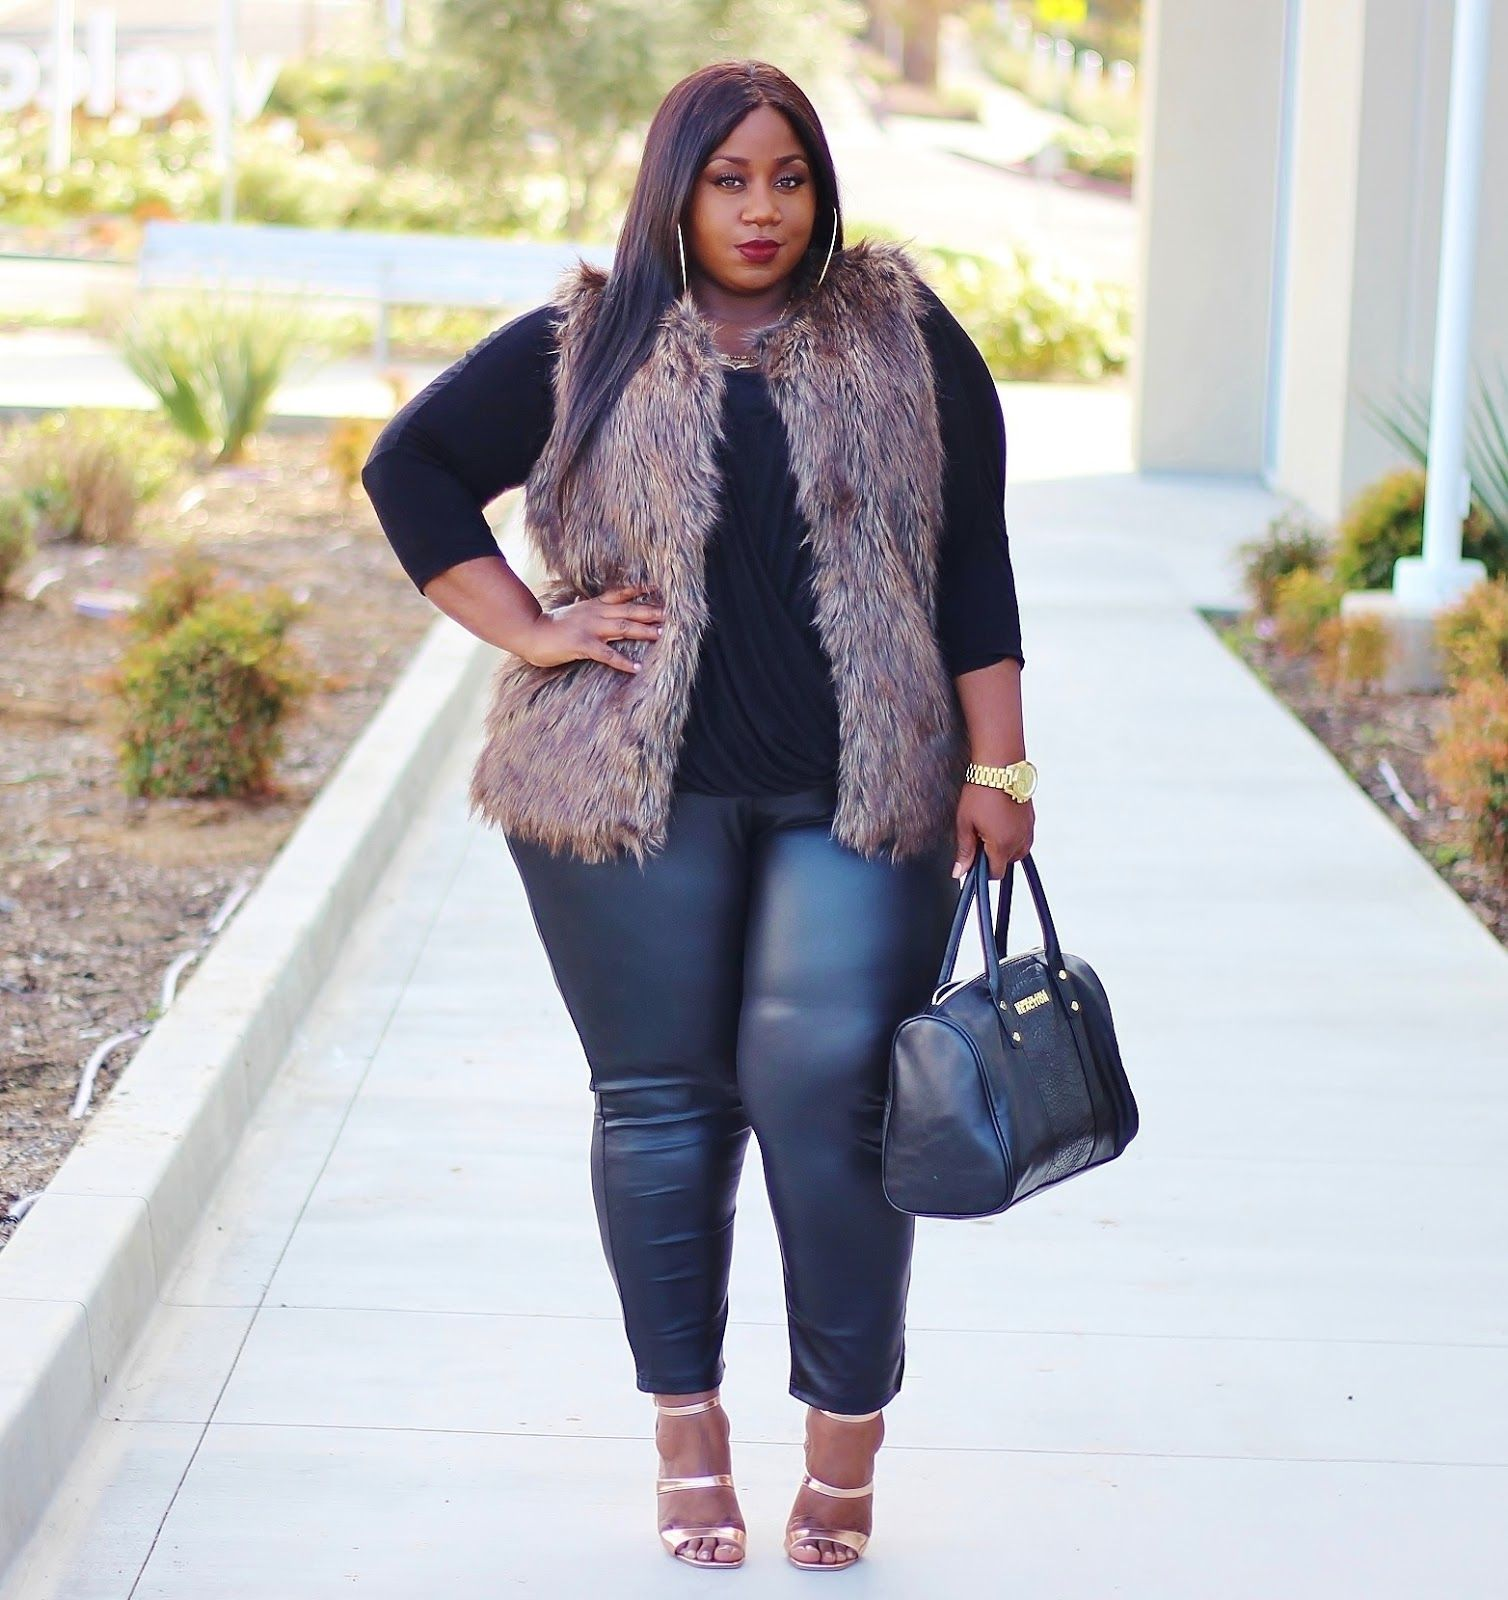 Plus Size Fashion for Women - LACE N LEOPARD: winter transition ...